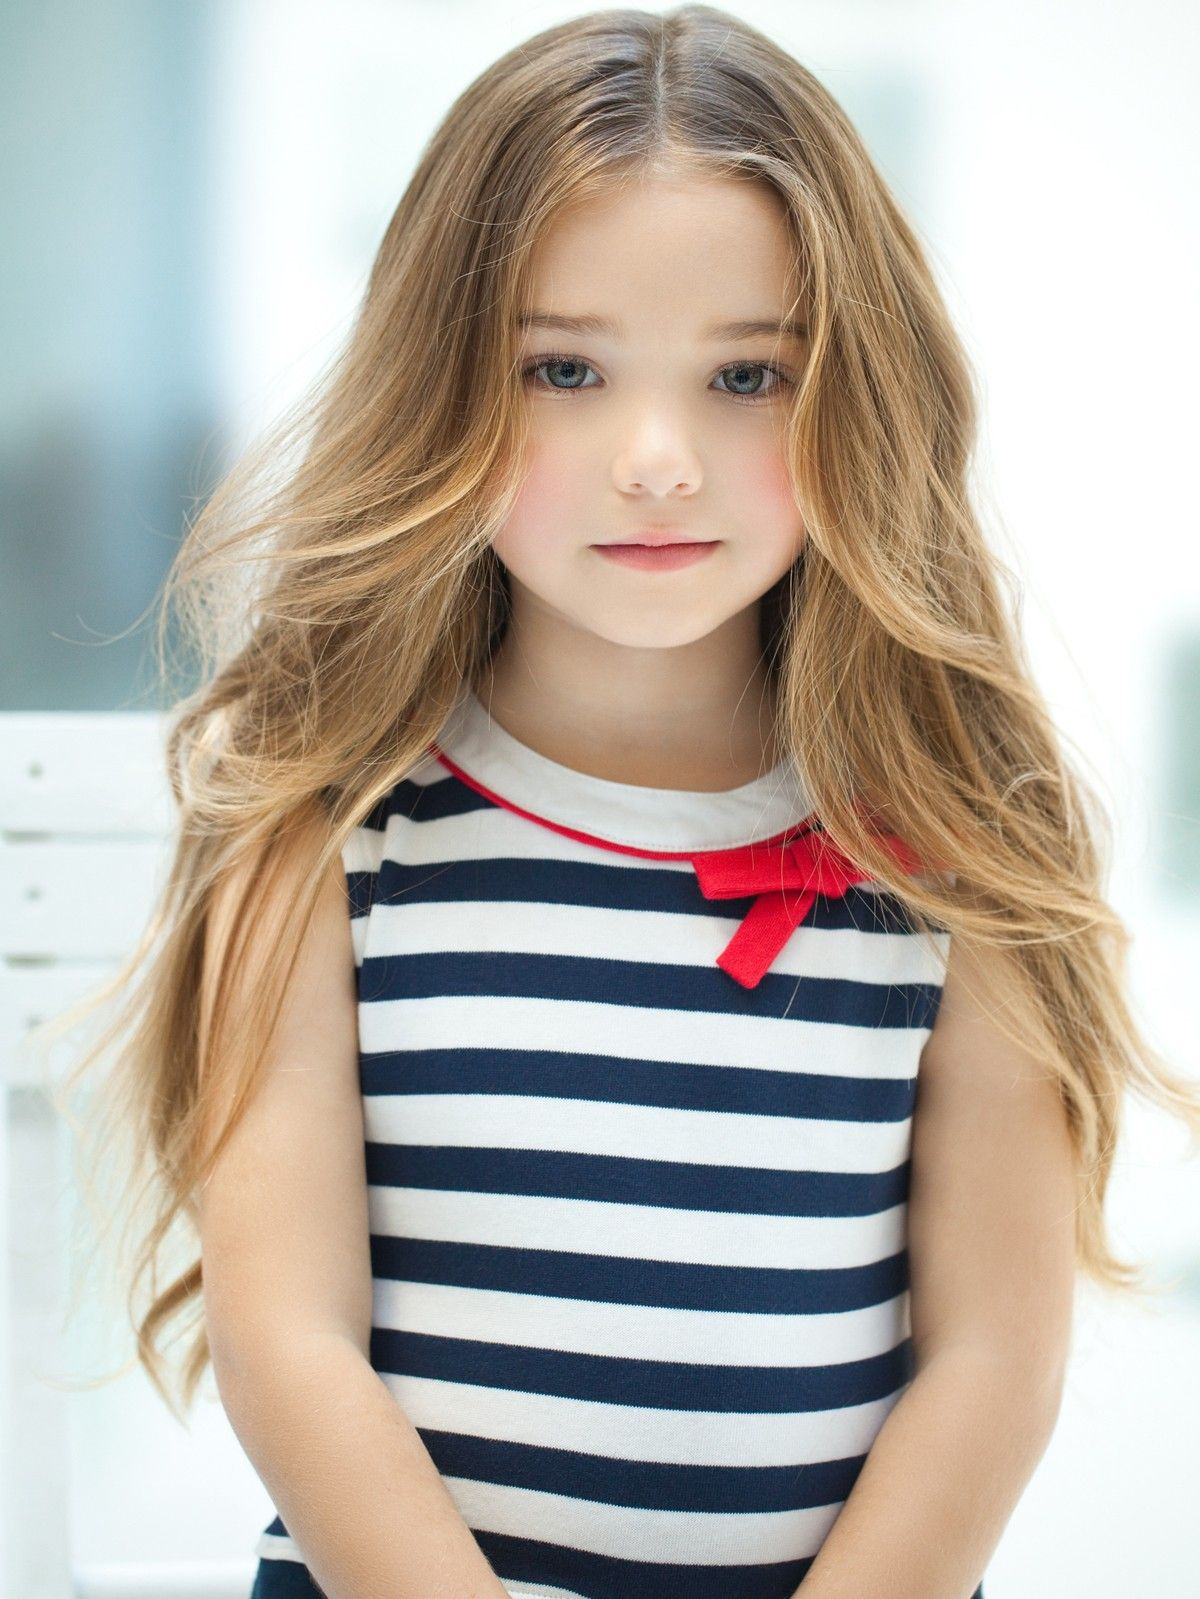 Little Beauty Royalty Free Stock Images: Beautiful Little Girl